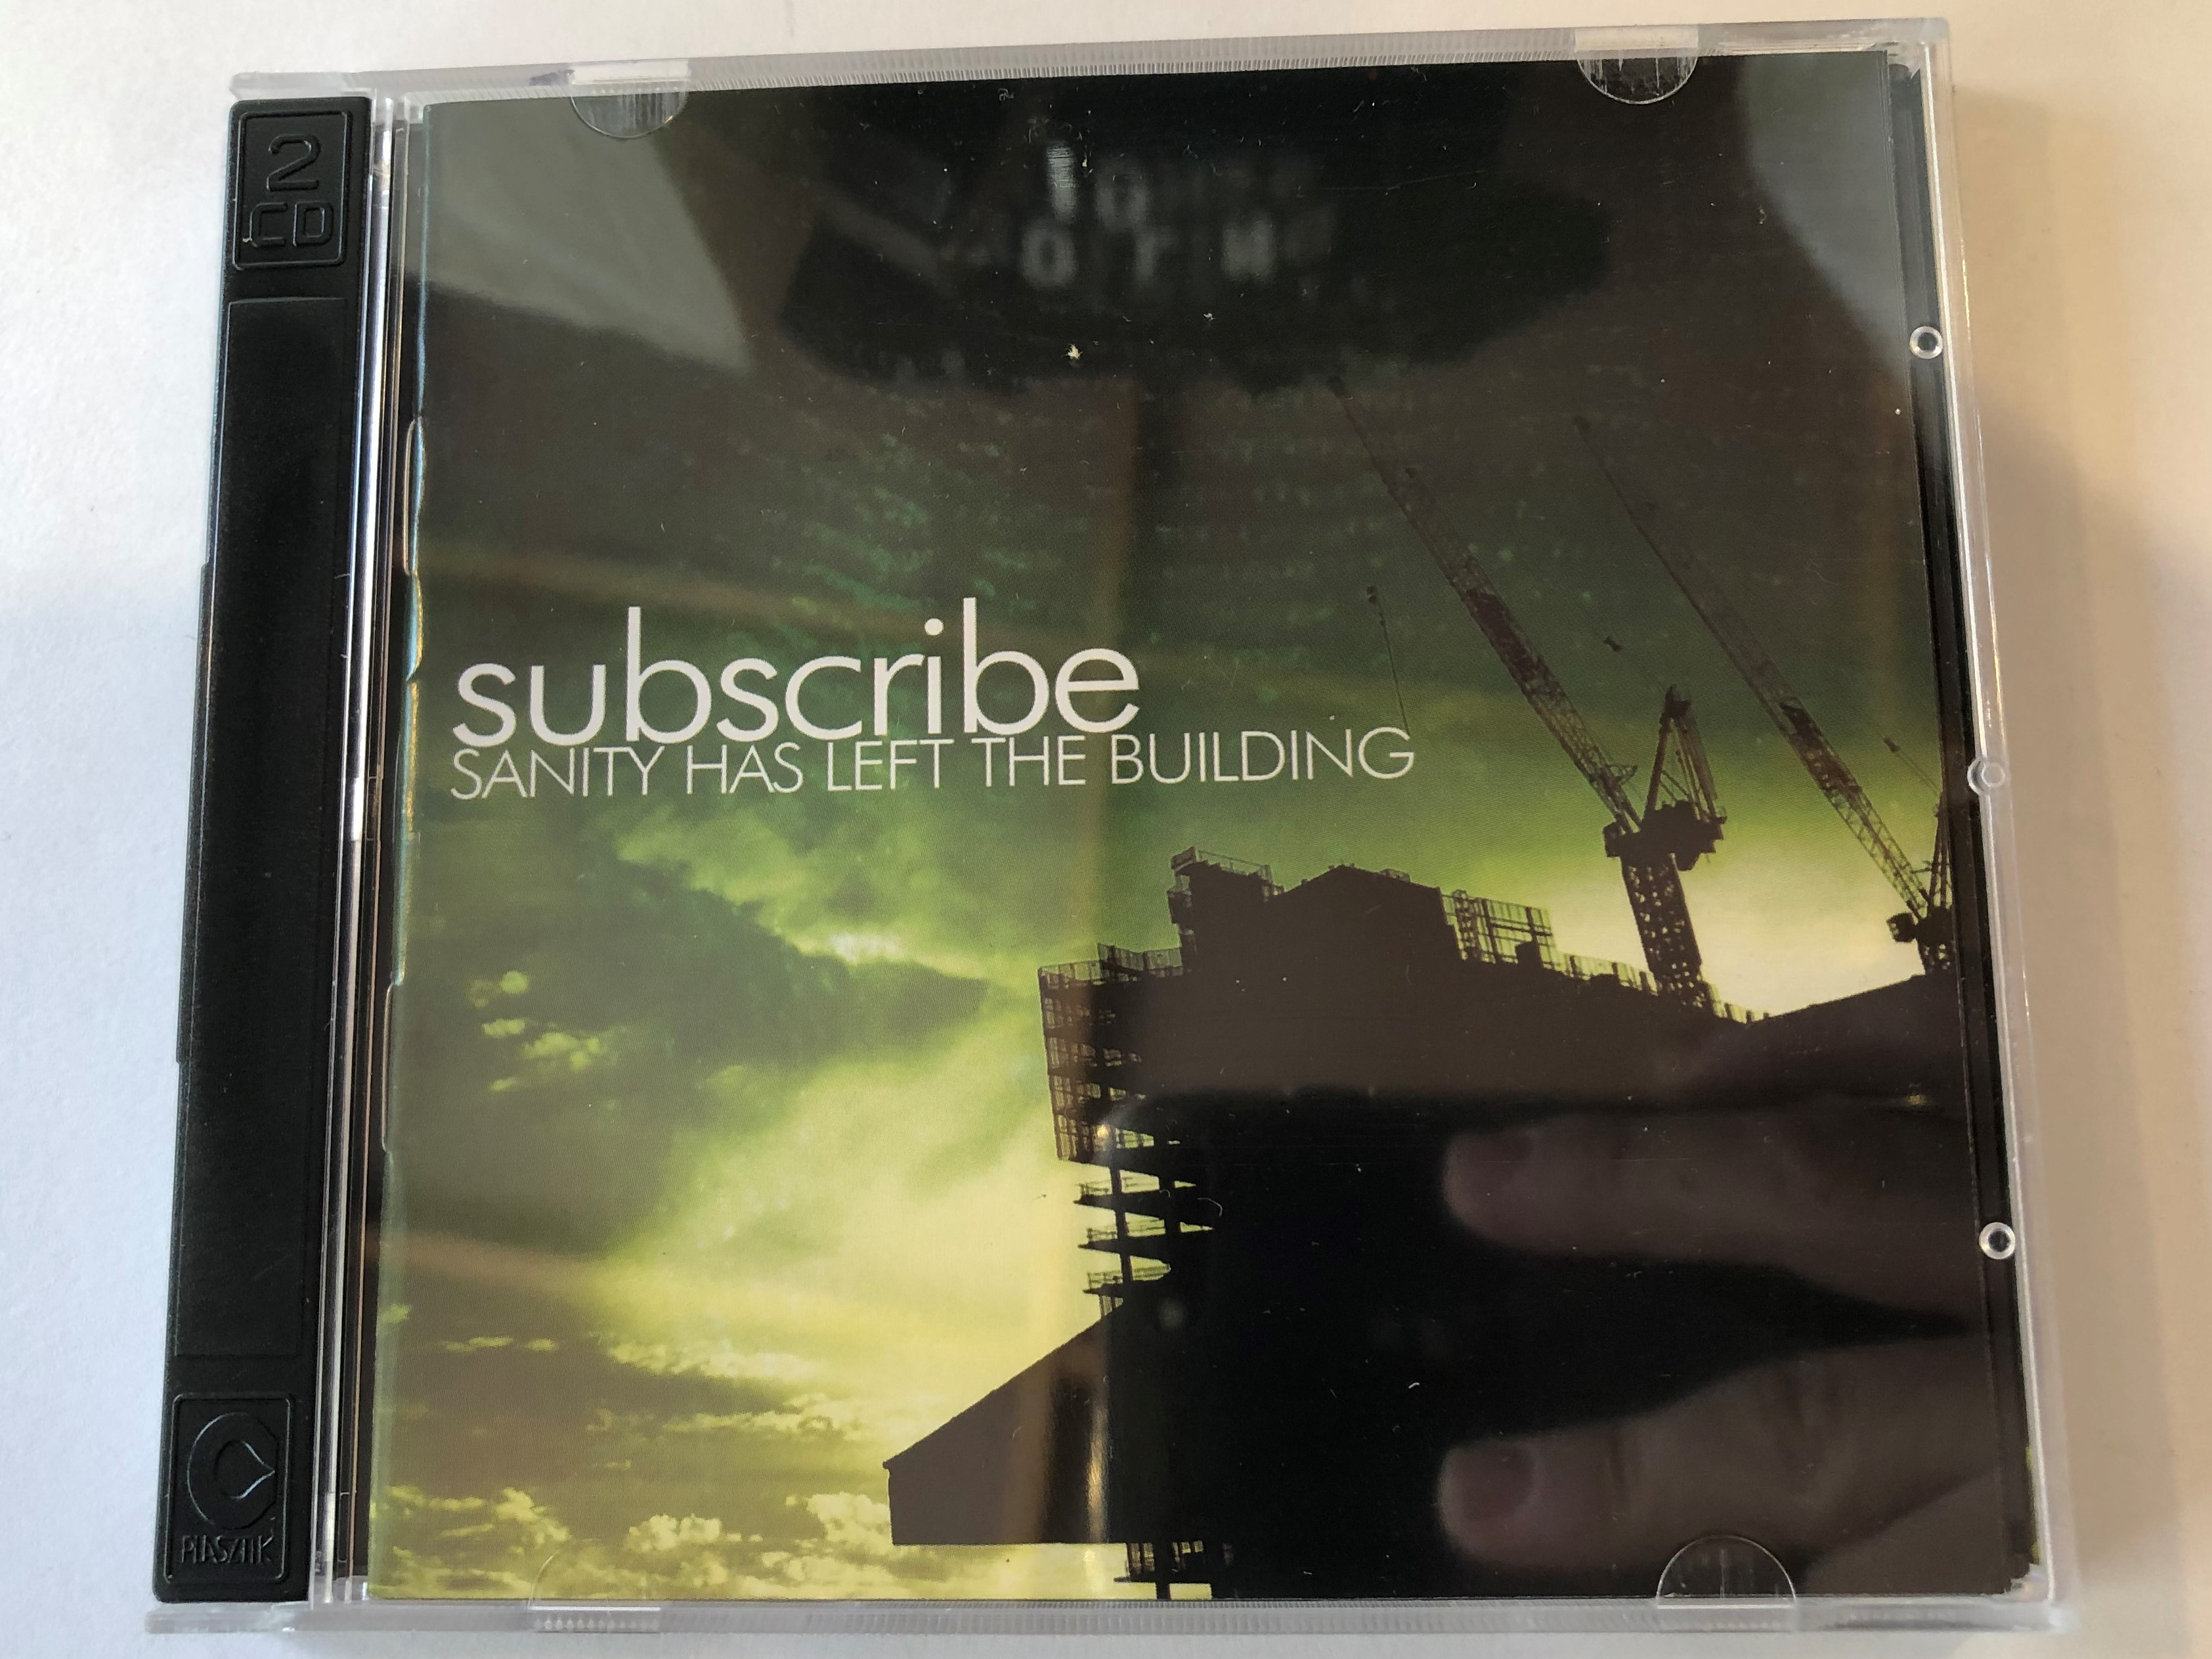 subscribe-sanity-has-left-the-building-edge-records-audio-cd-2004-5999505132246-1-.jpg